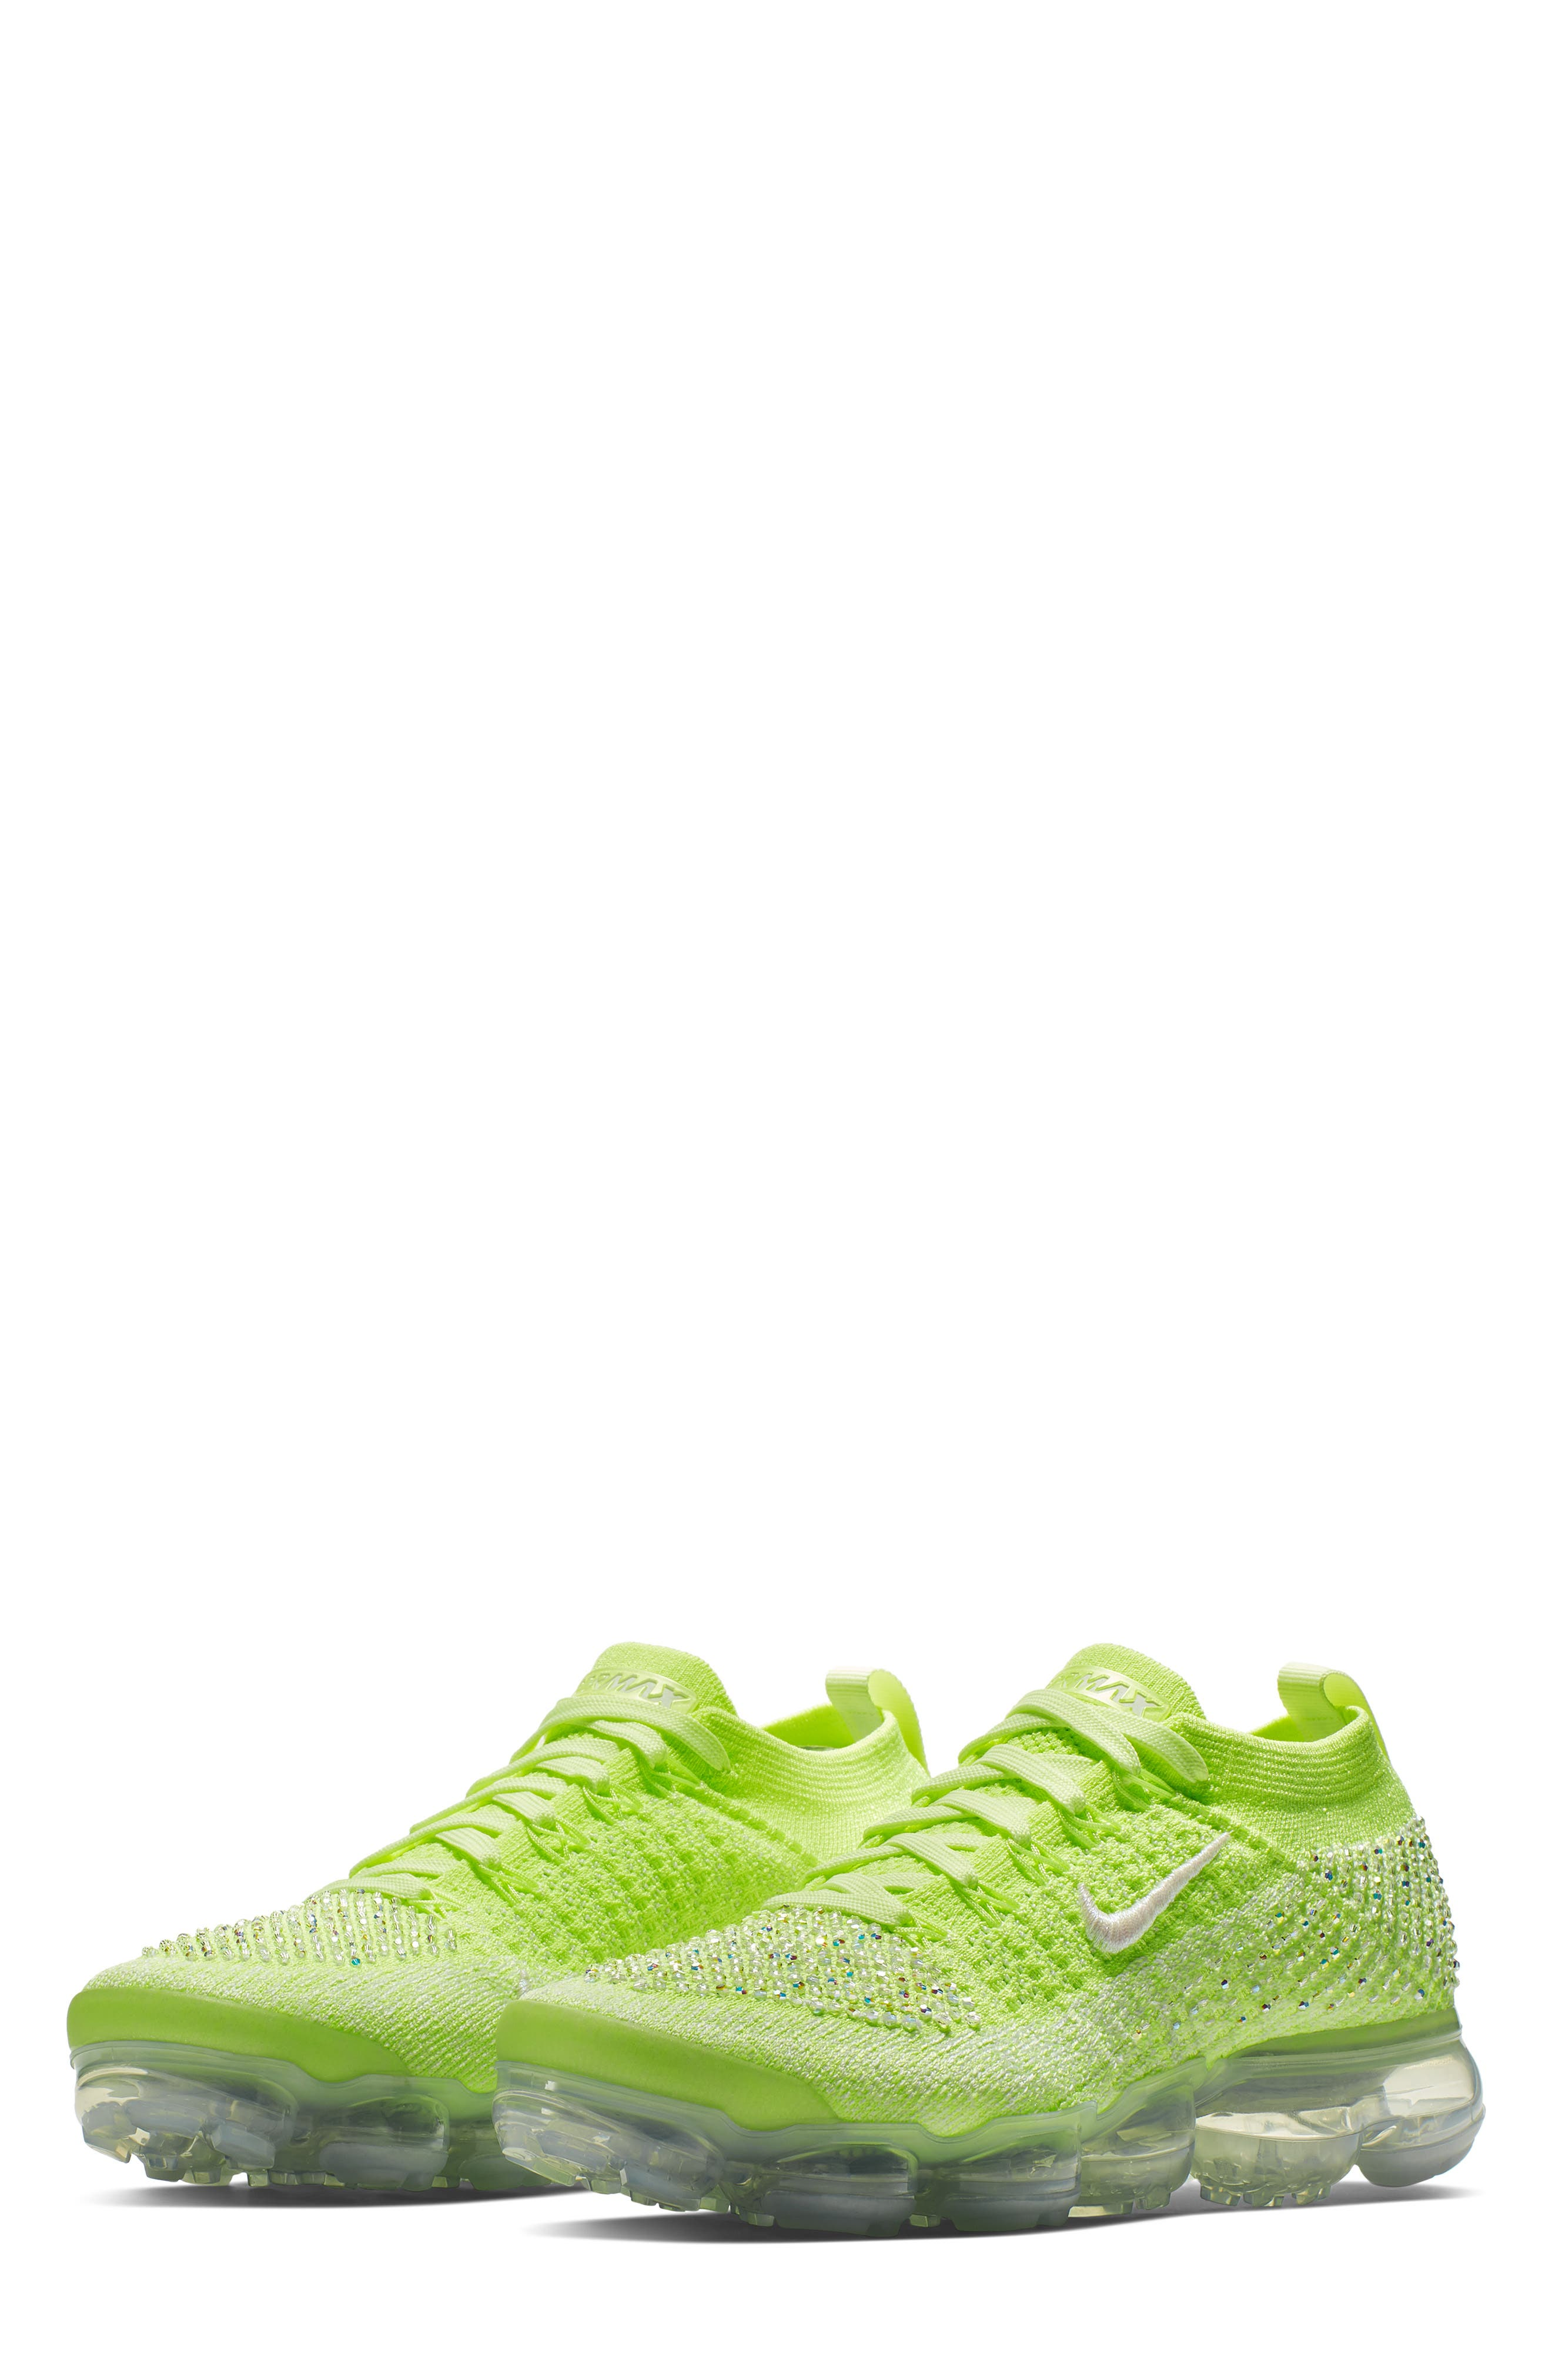 newest 67862 78db9 For Women Nike Flyknit   Nordstrom